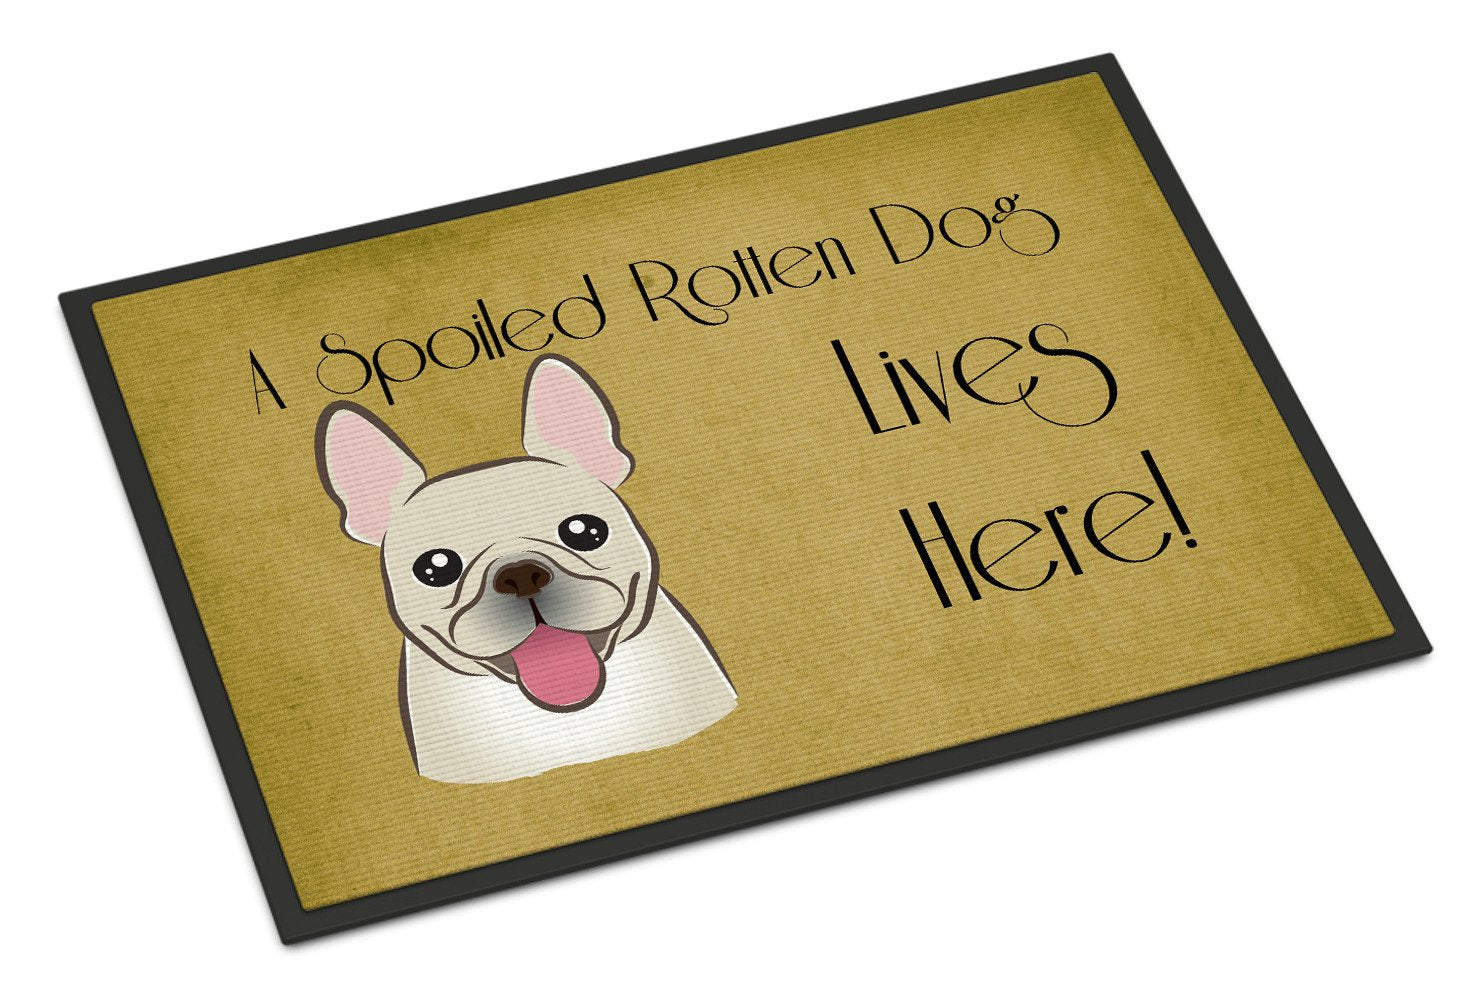 French Bulldog Spoiled Dog Lives Here Indoor or Outdoor Mat 18x27 BB1486MAT - the-store.com